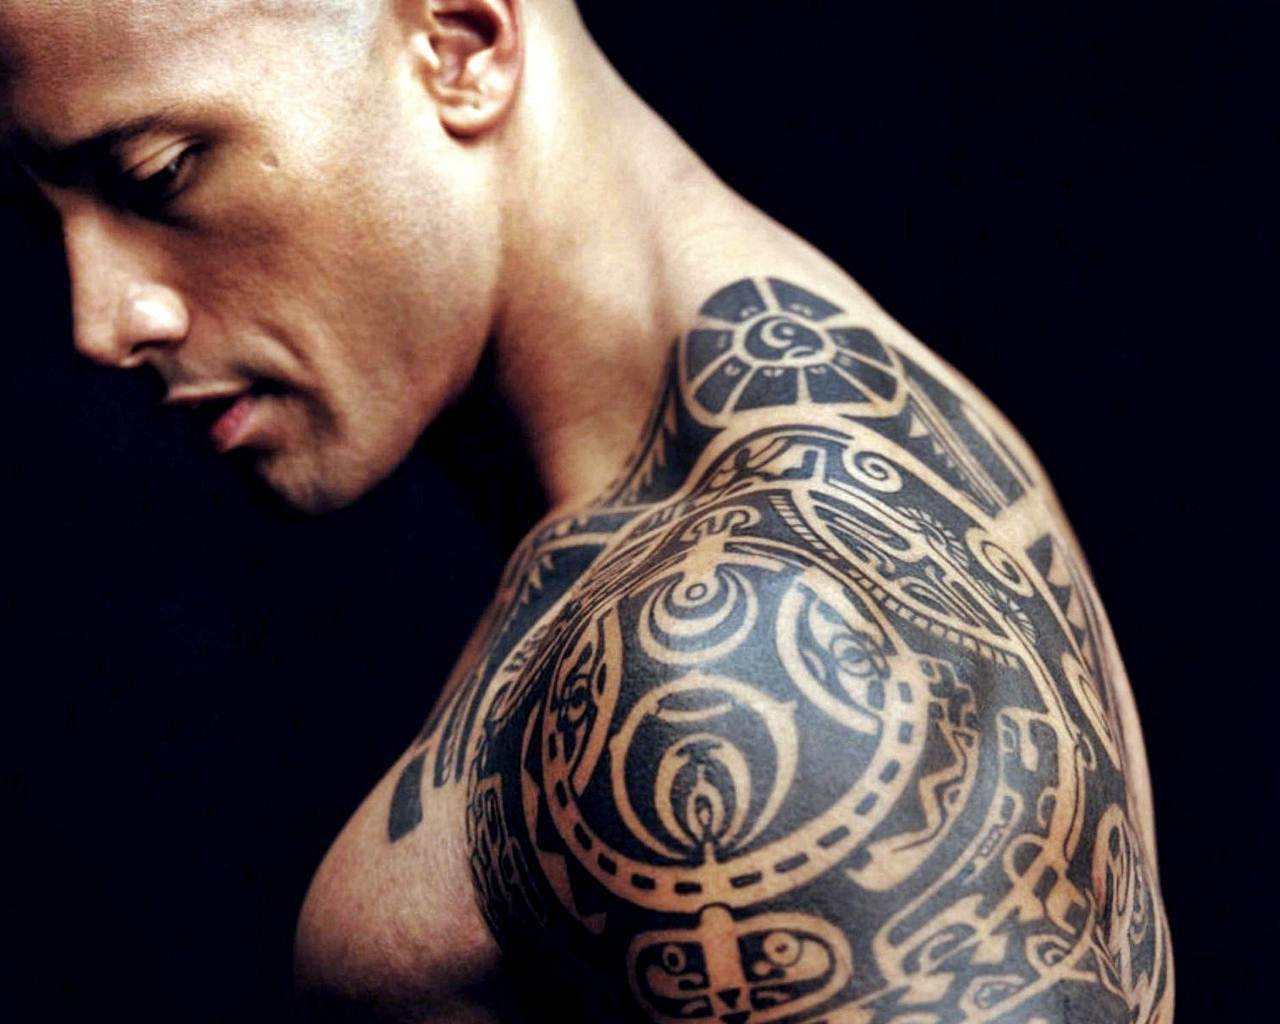 dwayne rock johnson sexiest celebrities 2015